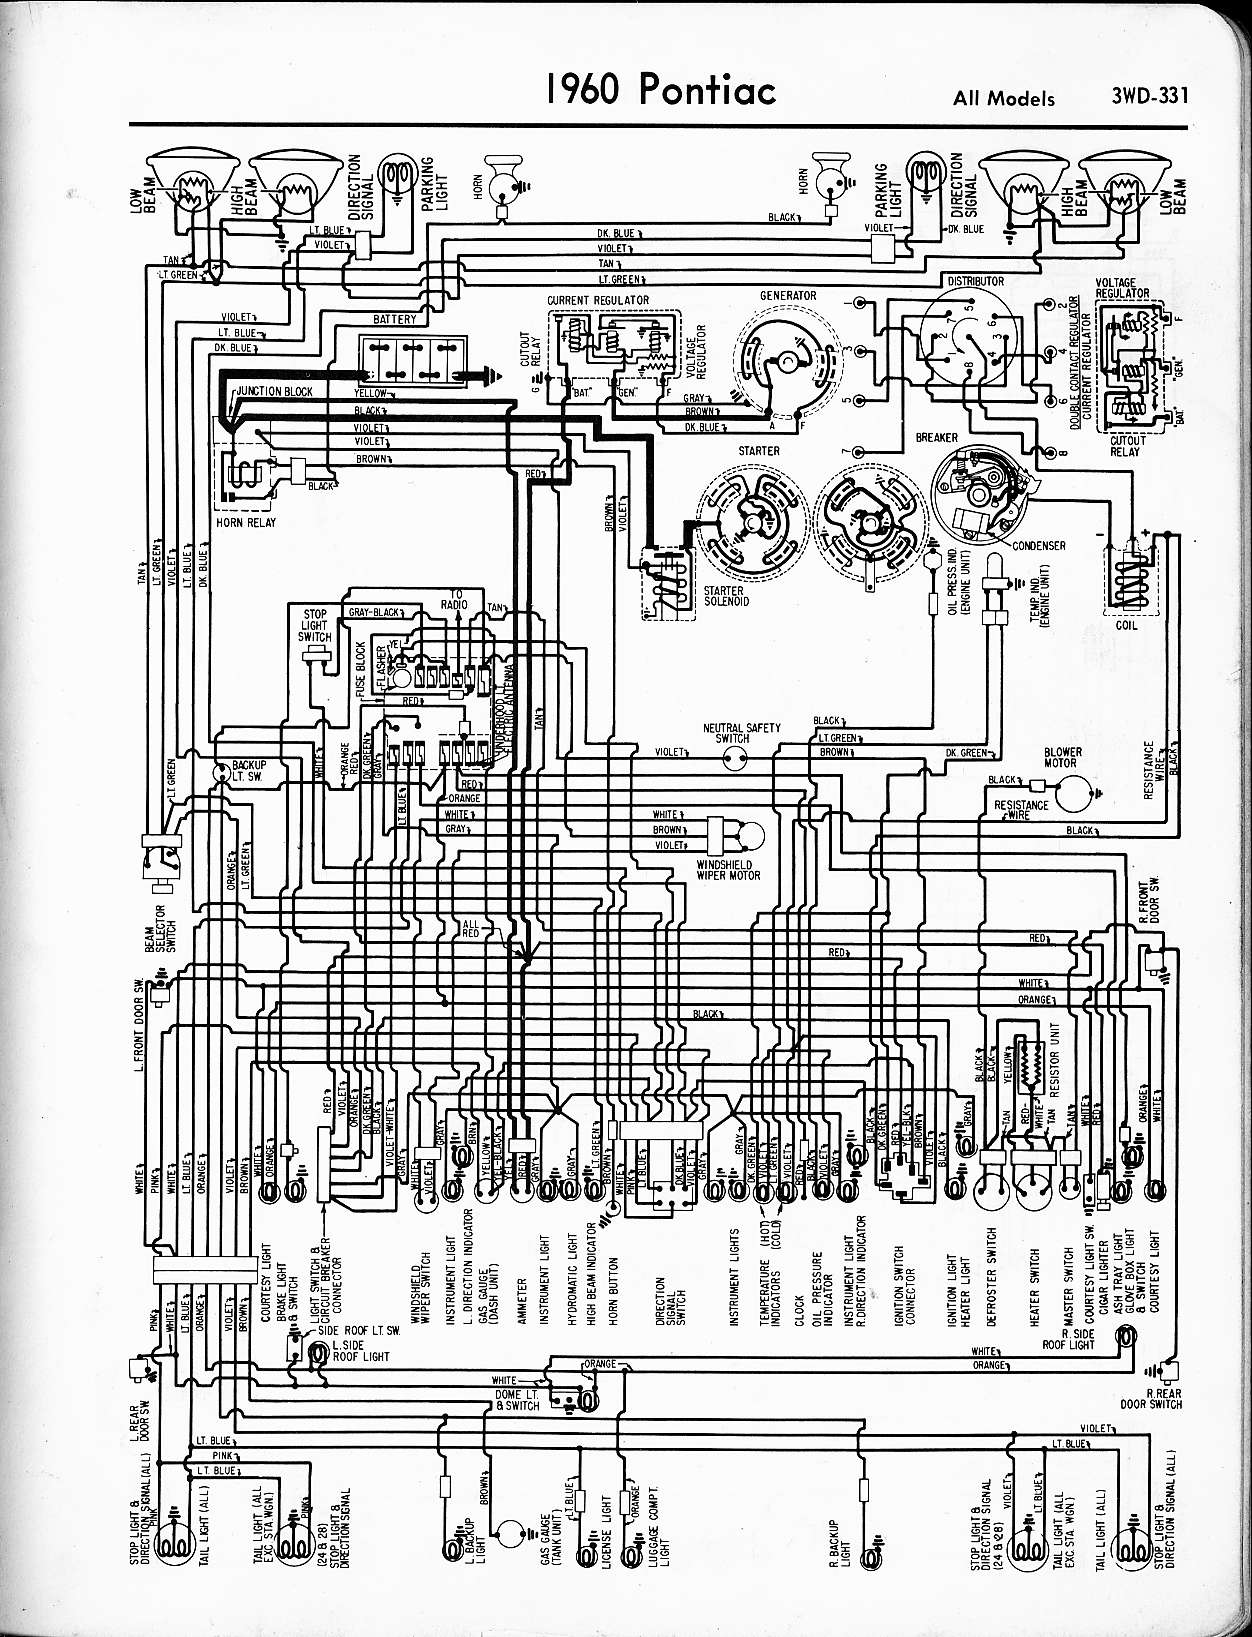 1970 gto dash wiring diagram wiring diagram rh vw13 vom winnenthal de